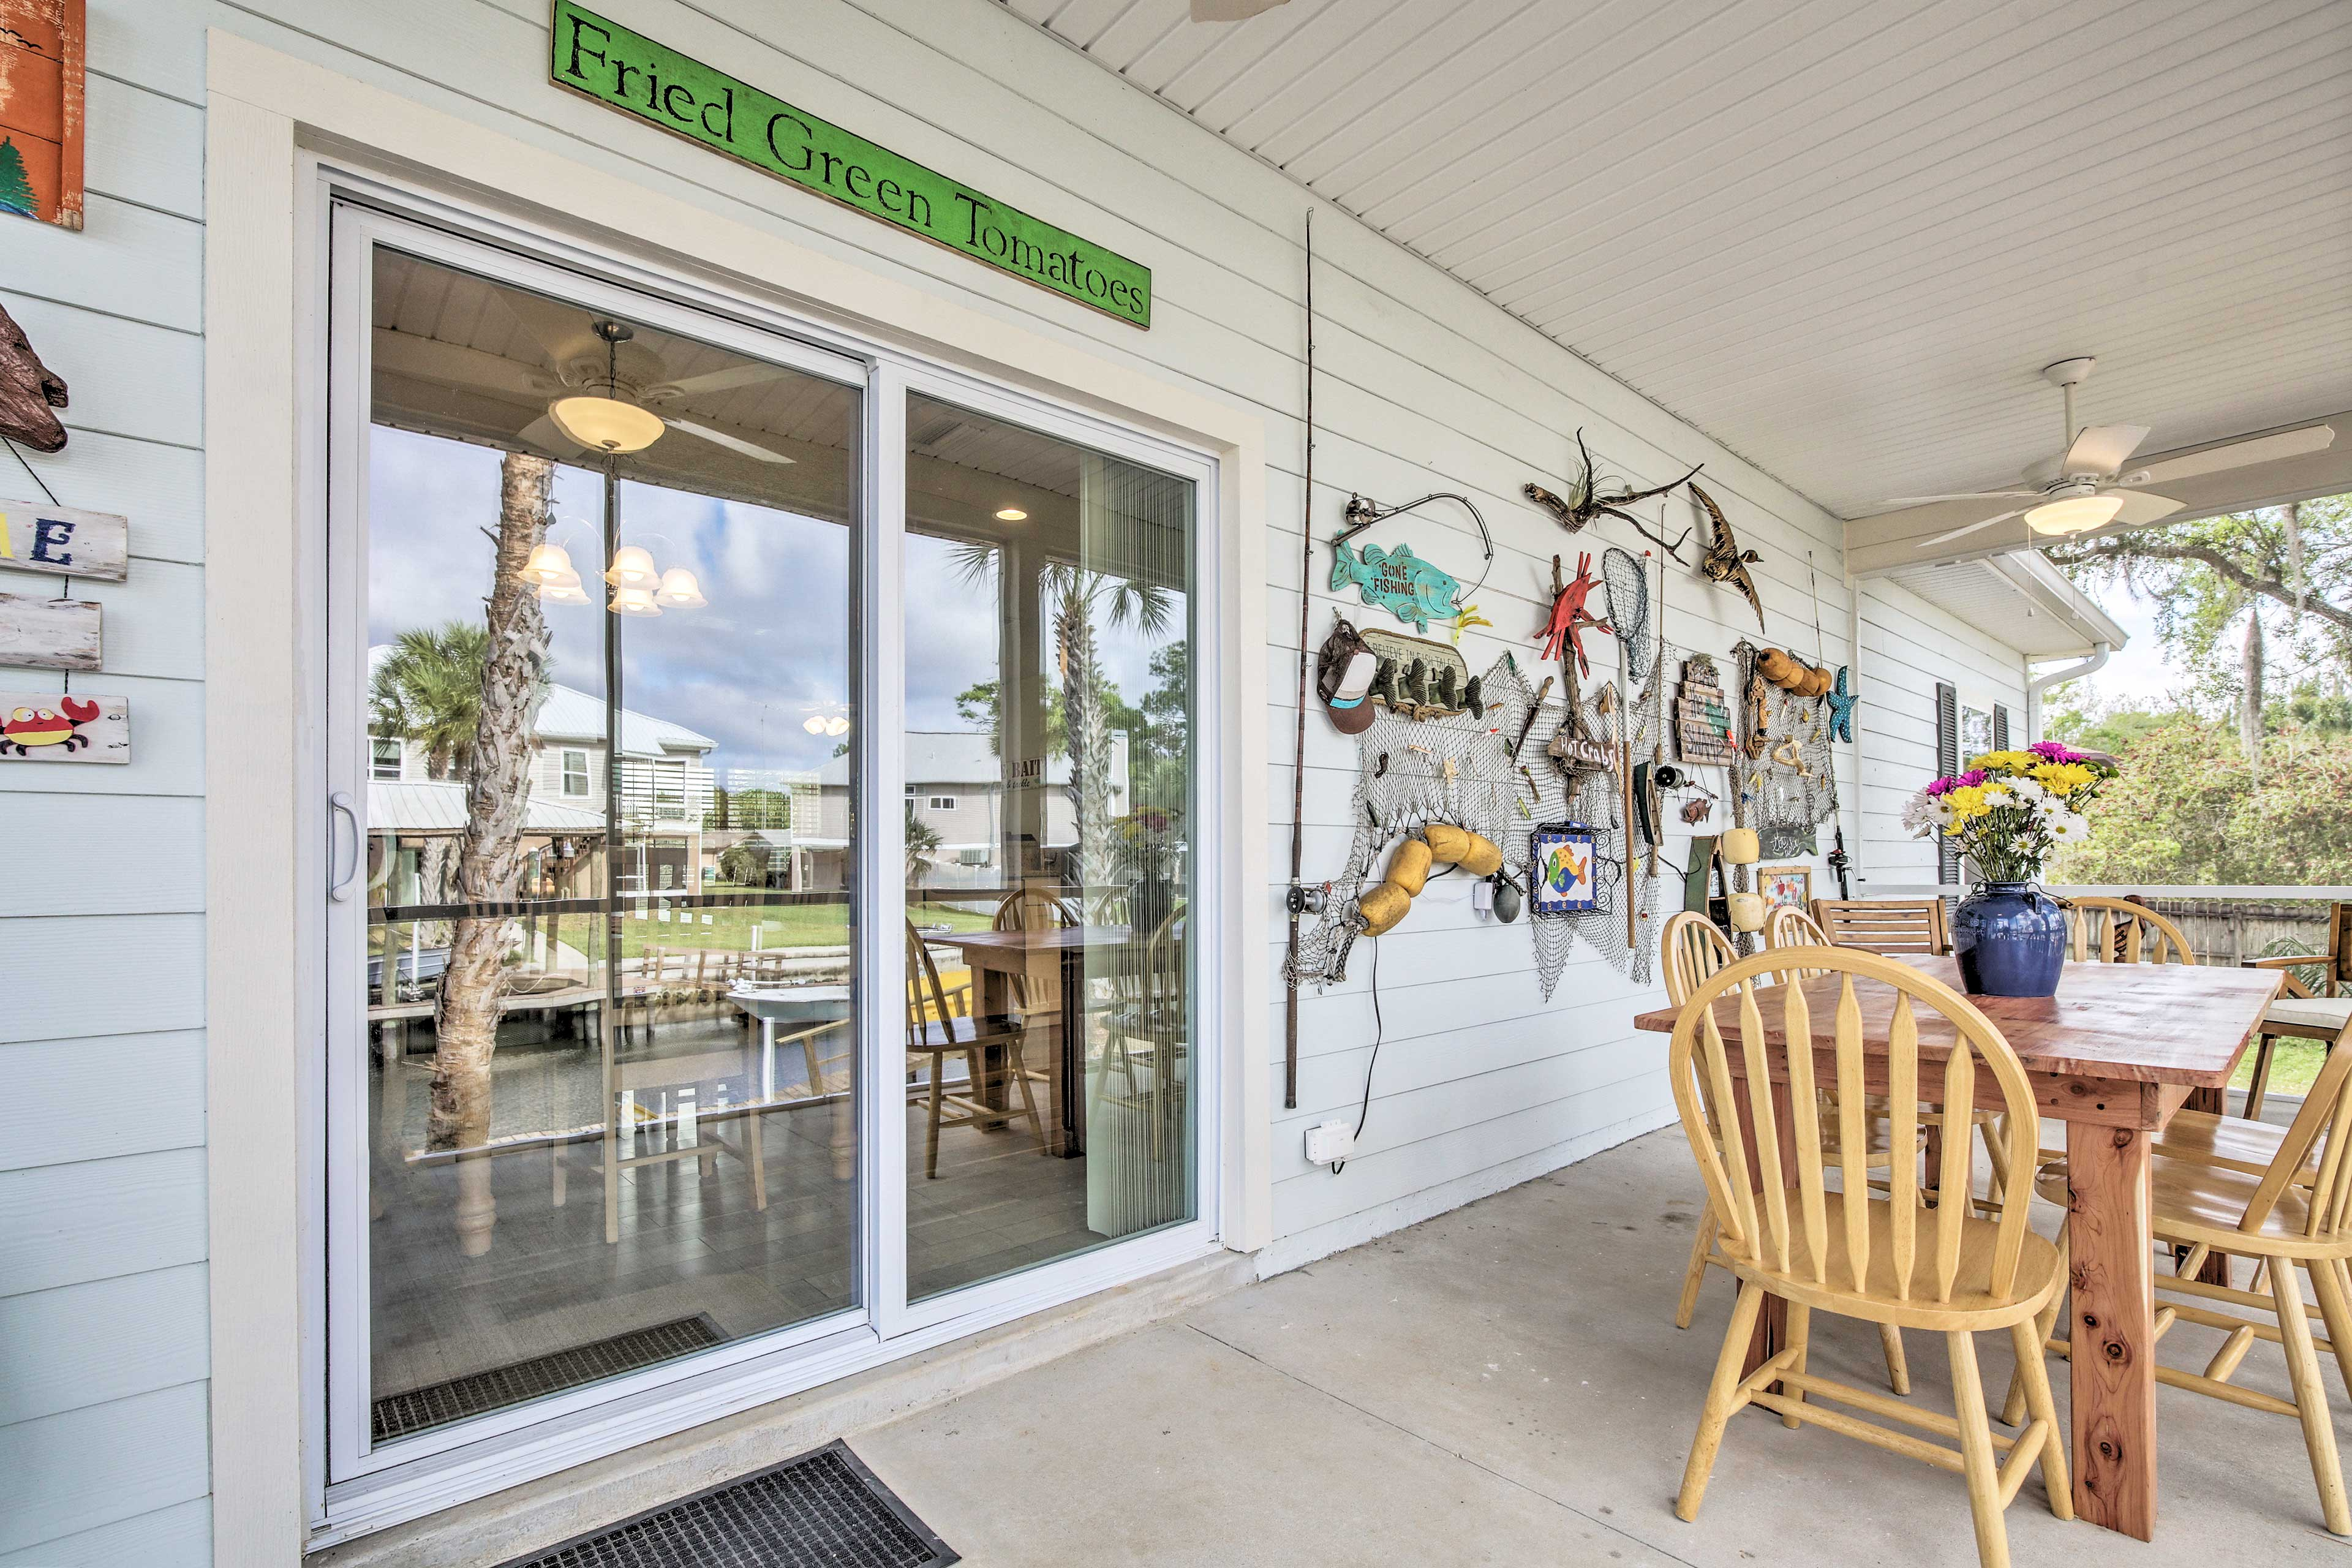 You'll love these charming Florida vibes.